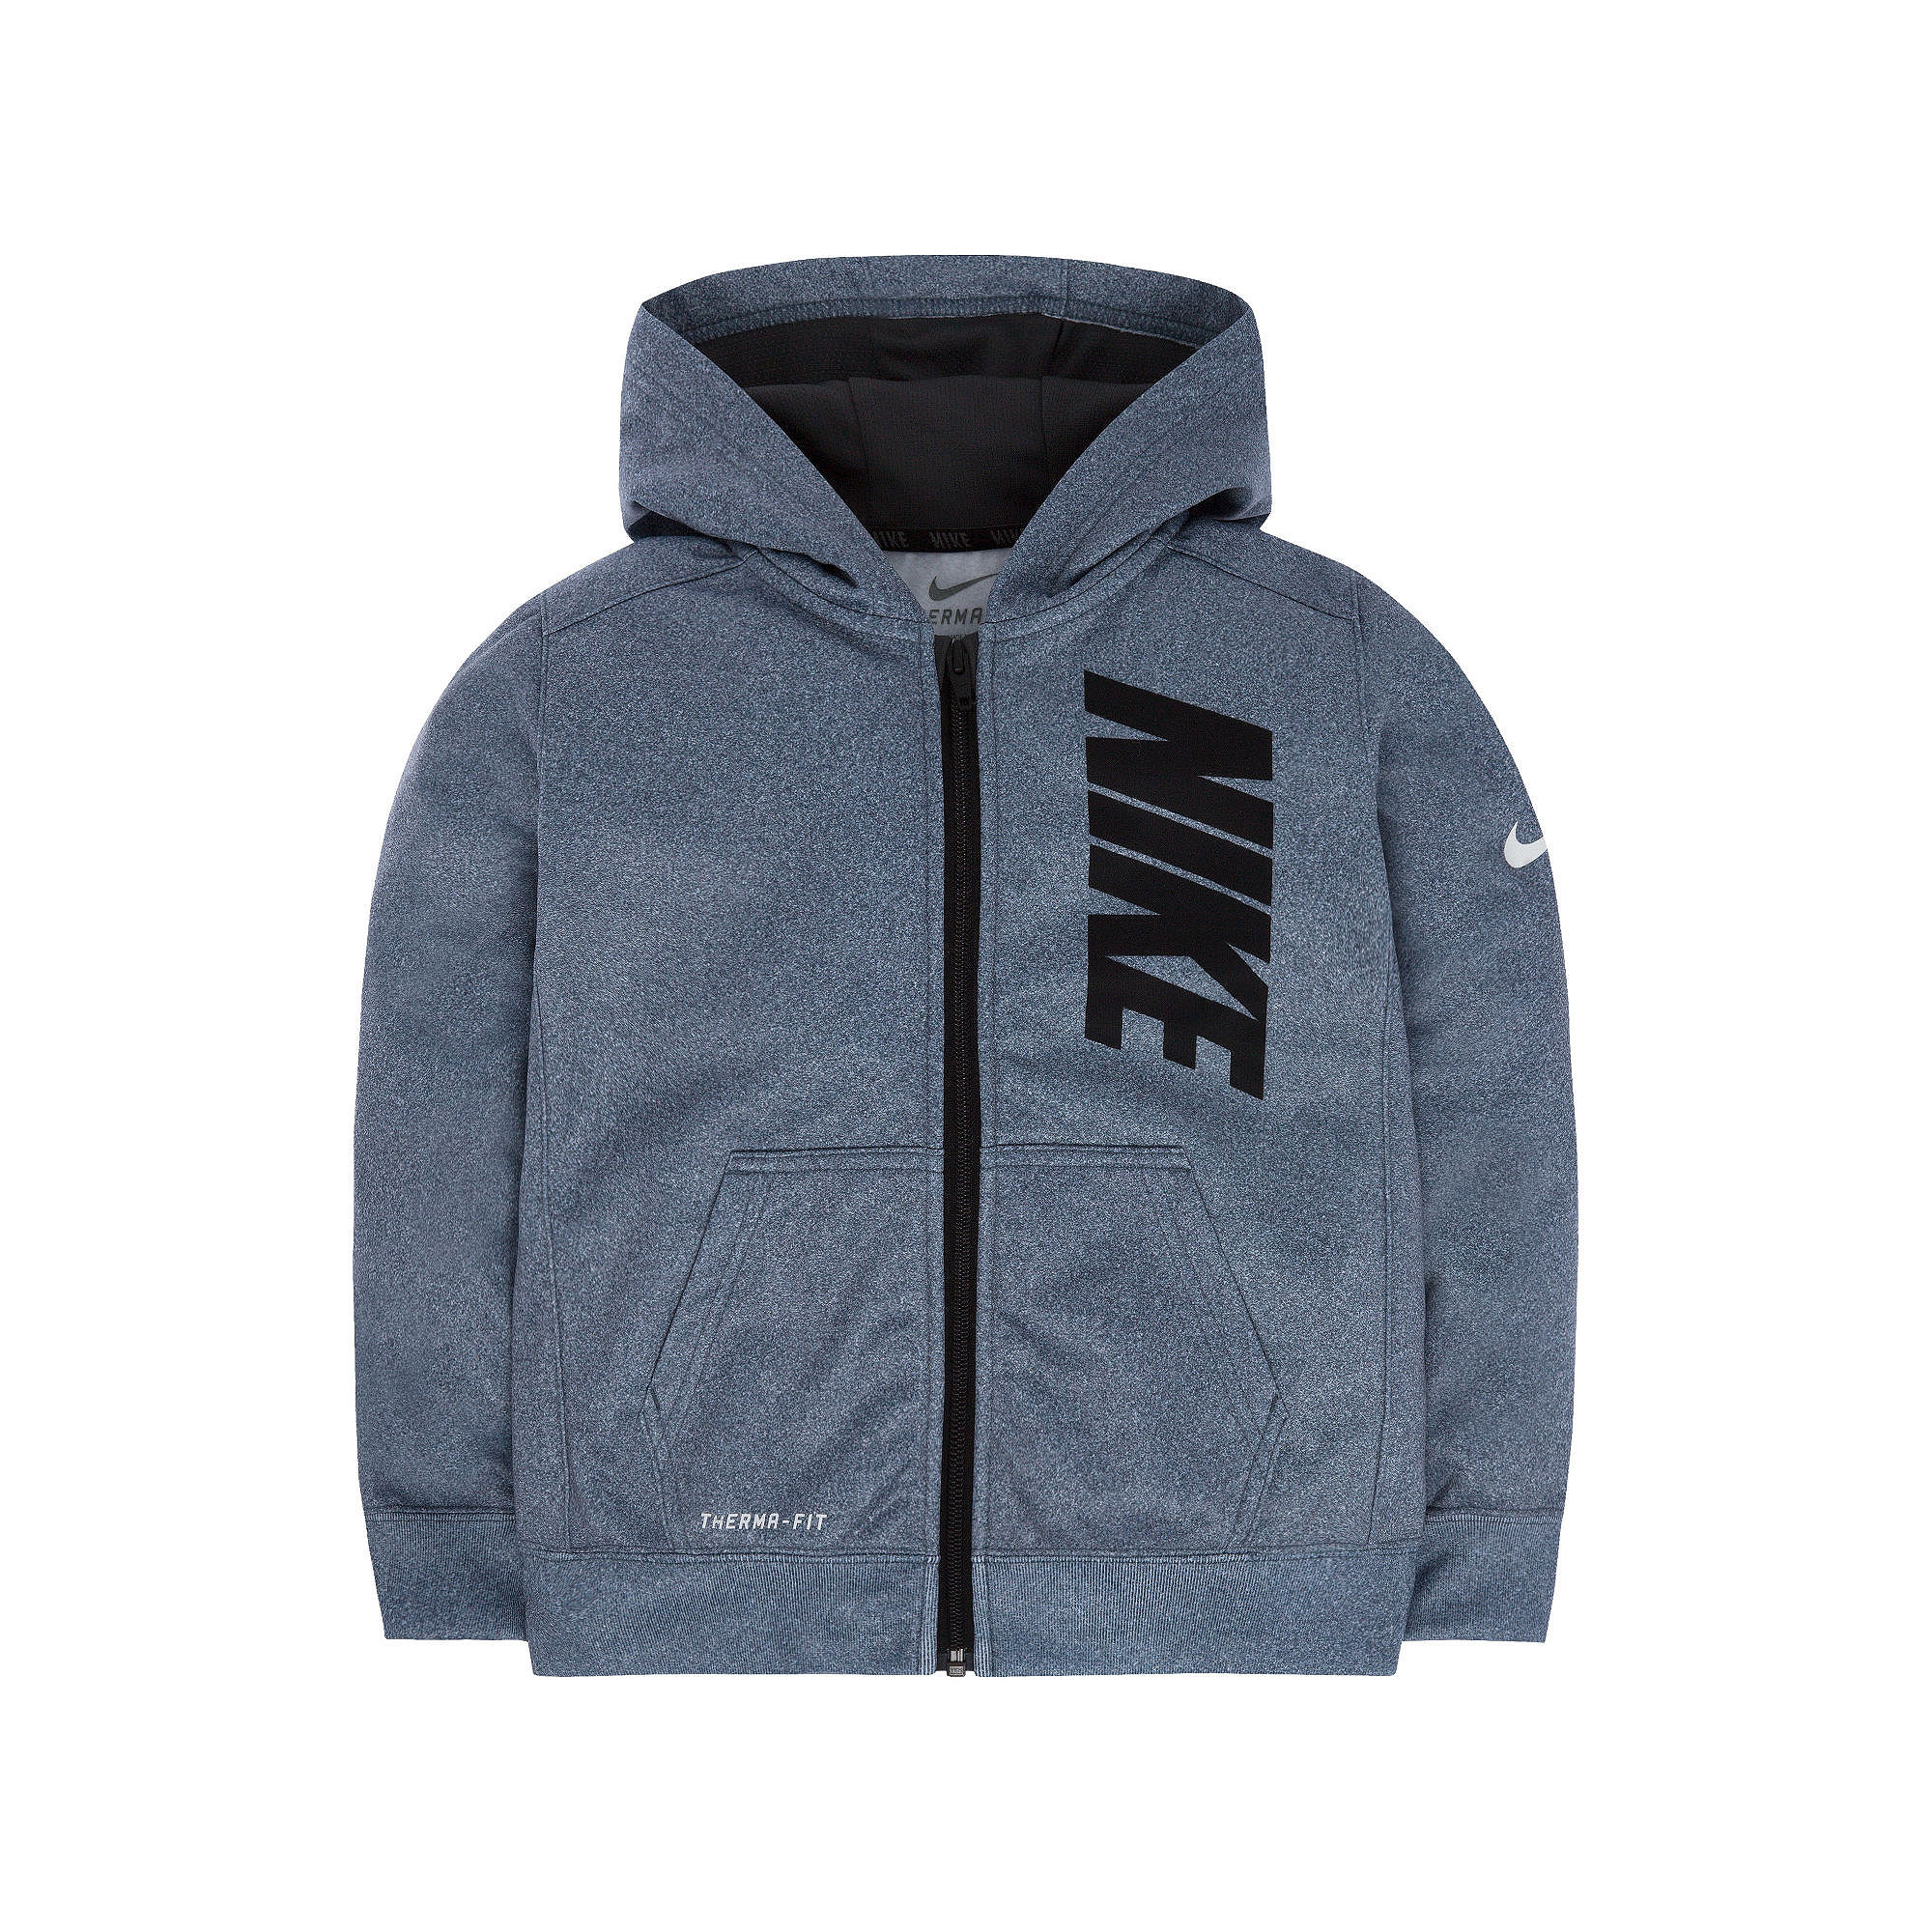 e91023f9 UPC 617845627684. ZOOM. UPC 617845627684 has following Product Name  Variations: Nike Long-Sleeve Front-Zip Fleece Hoodie - Preschool Boys 4- ...